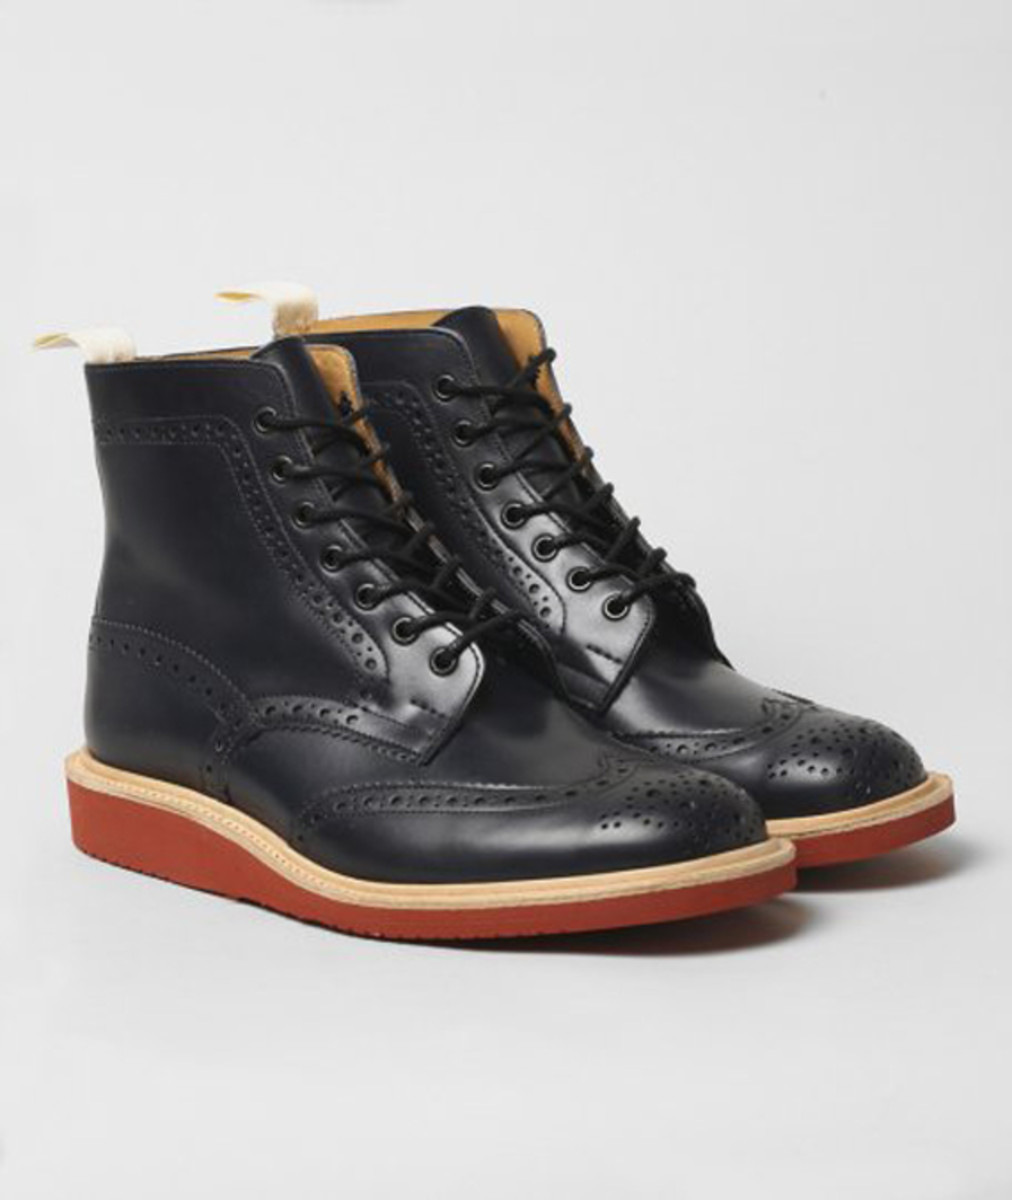 trickers-x-norse-projects-04